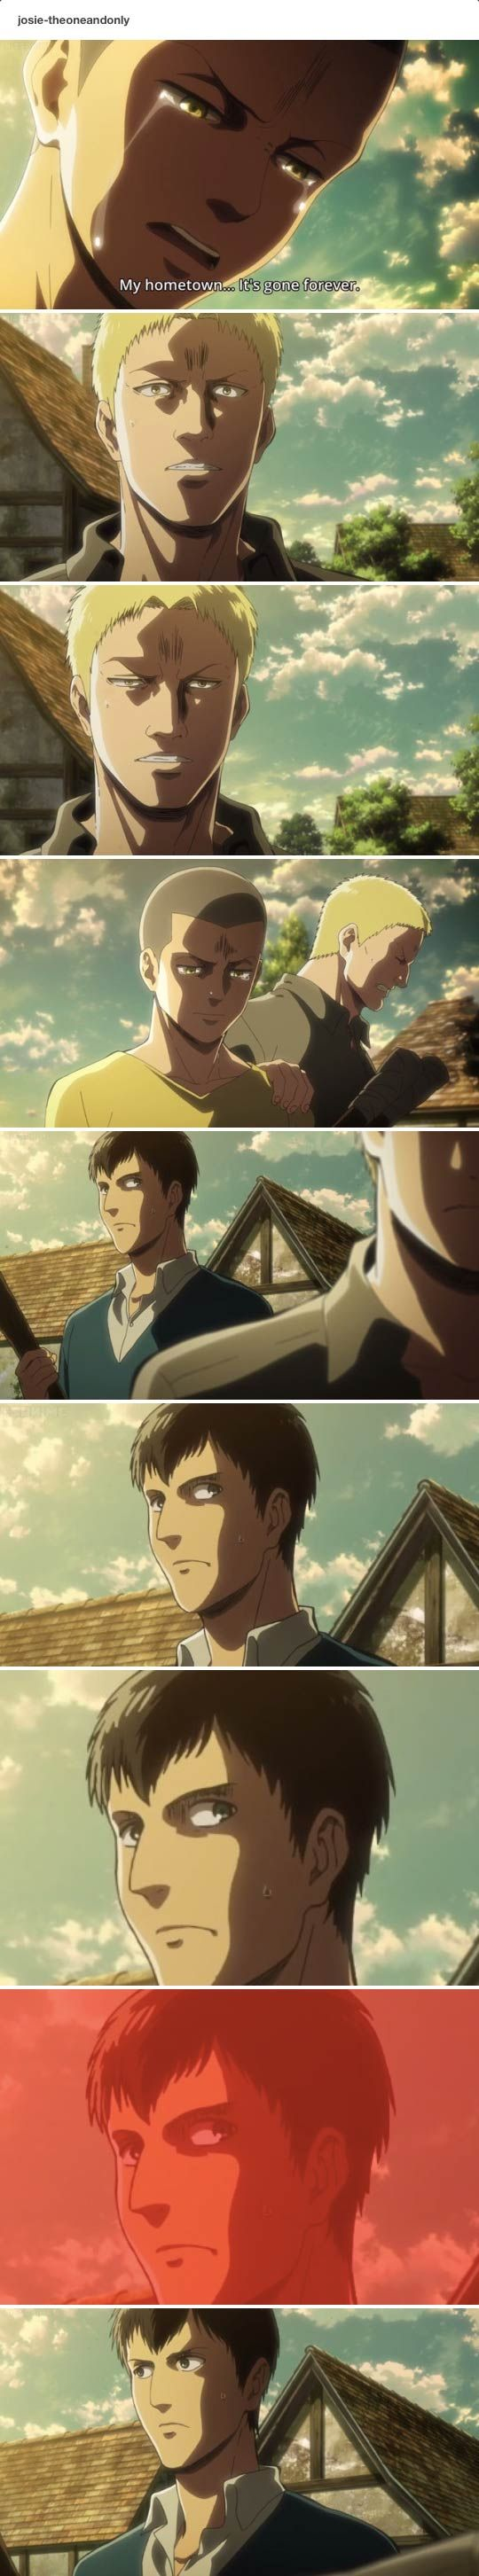 Bertholdt: HOW. DARE. YOU. NOT. LOVE. ME. I LOVE YOU REINER!!! Oh look a butterfly